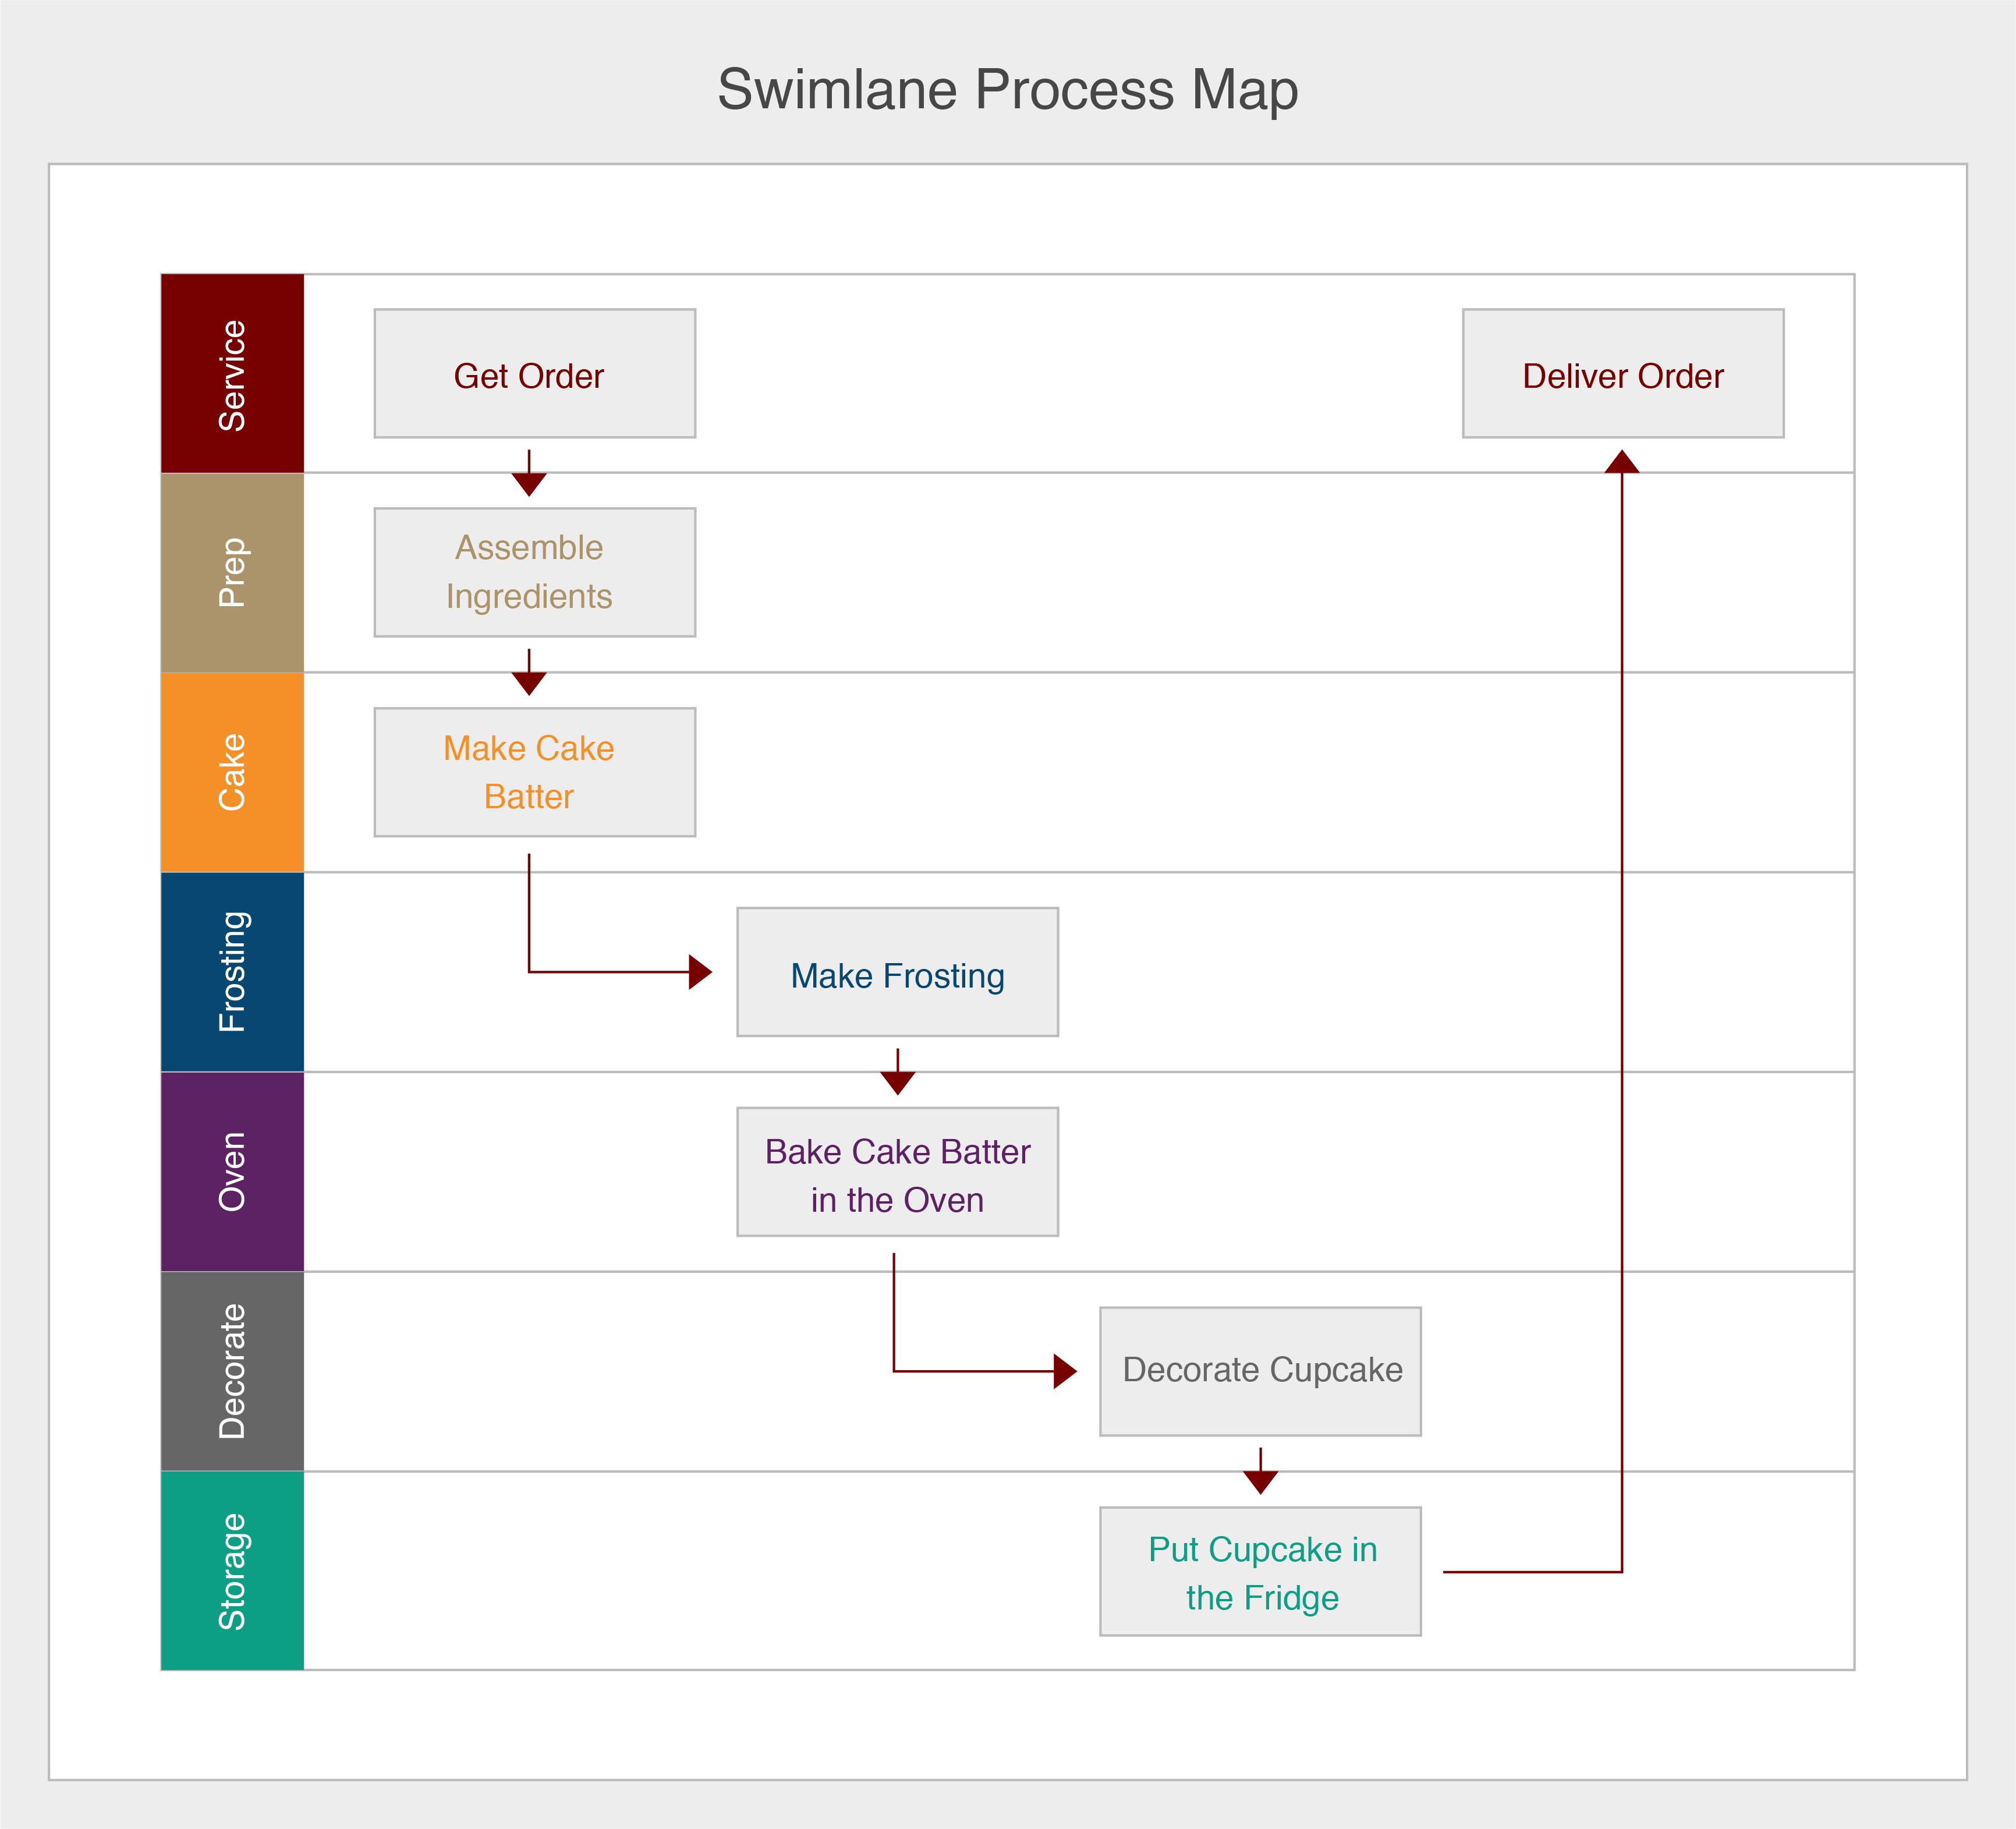 A sample swimlane map showing the details of a cupcake delivery process.